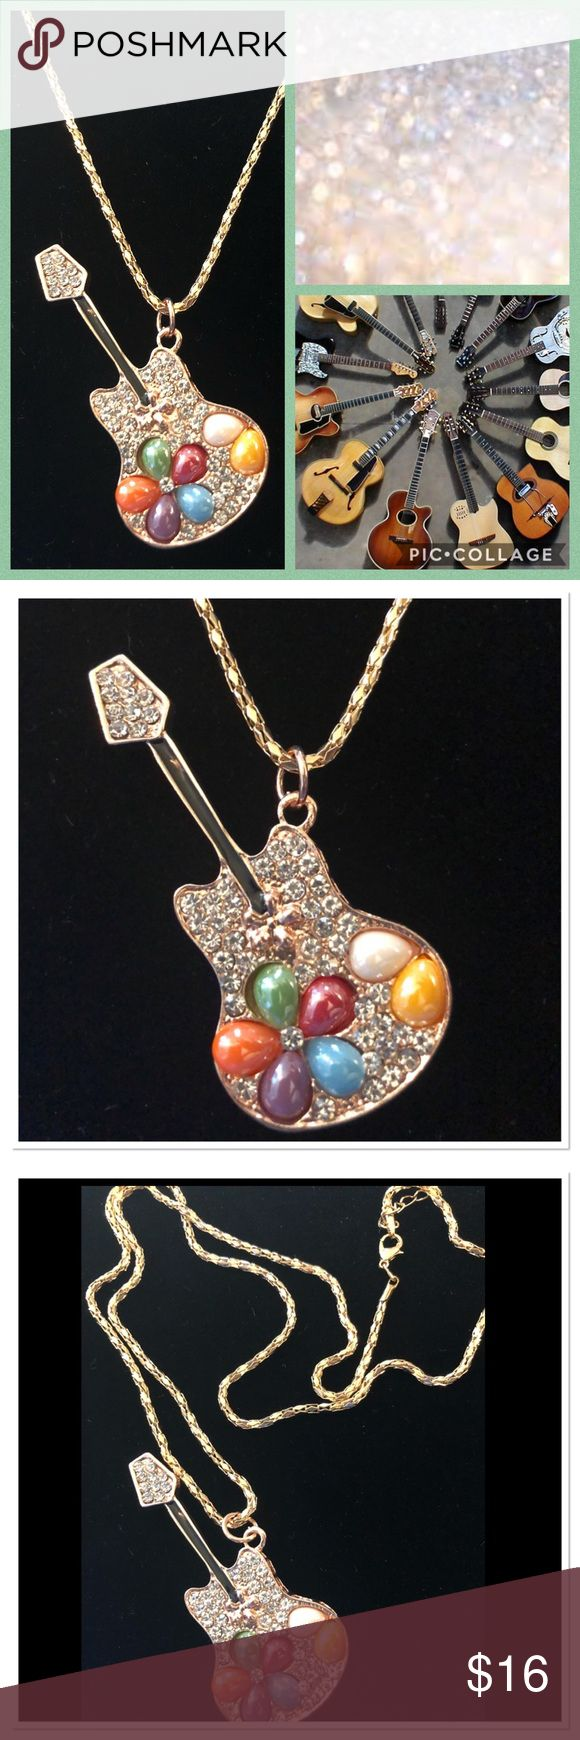 """Rhinestone Guitar Necklace Beautiful pendant adorned with rhinestones &multi colored stones. Great for music lovers! Gold rope chain is 28"""". NEW Jewelry Necklaces"""